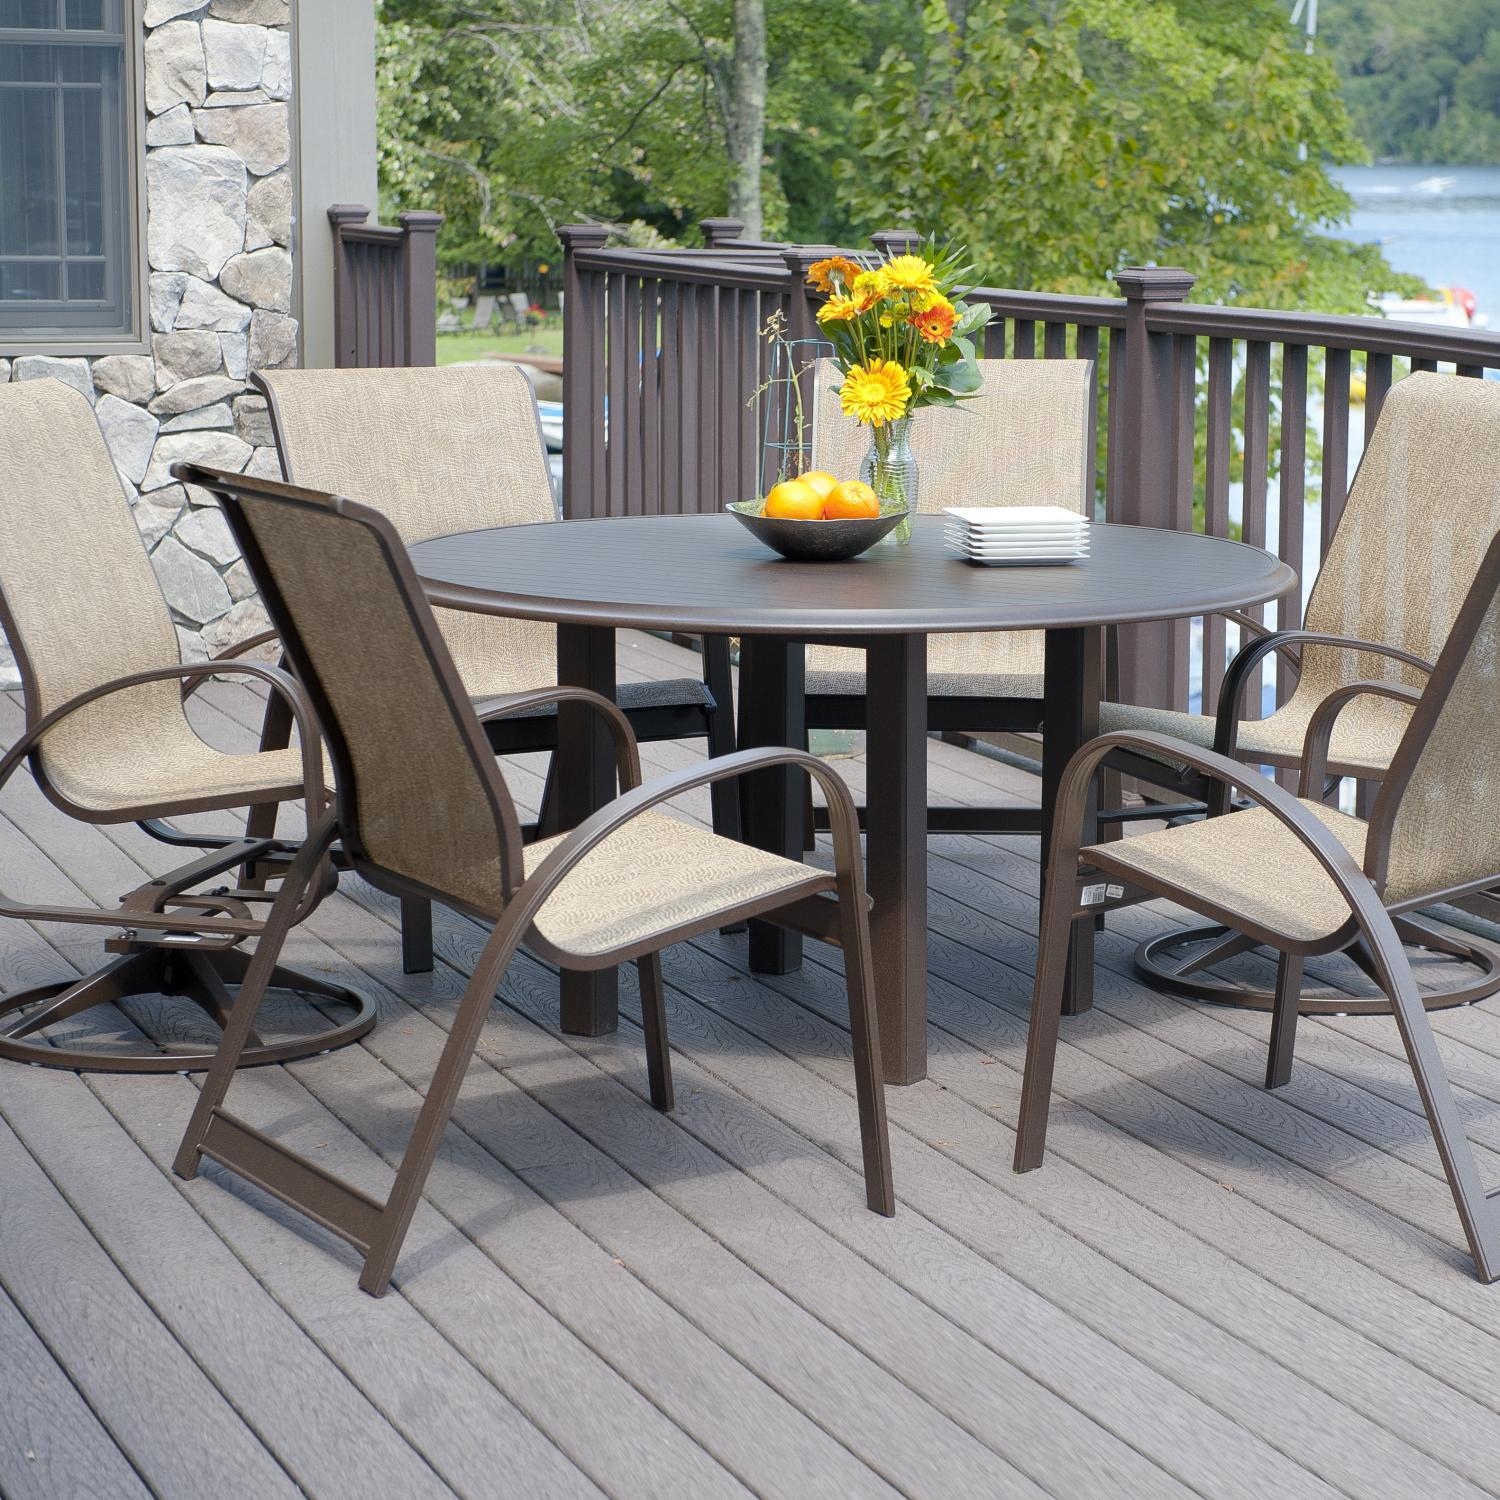 Affordable patio sets patio design ideas for Affordable outdoor dining sets